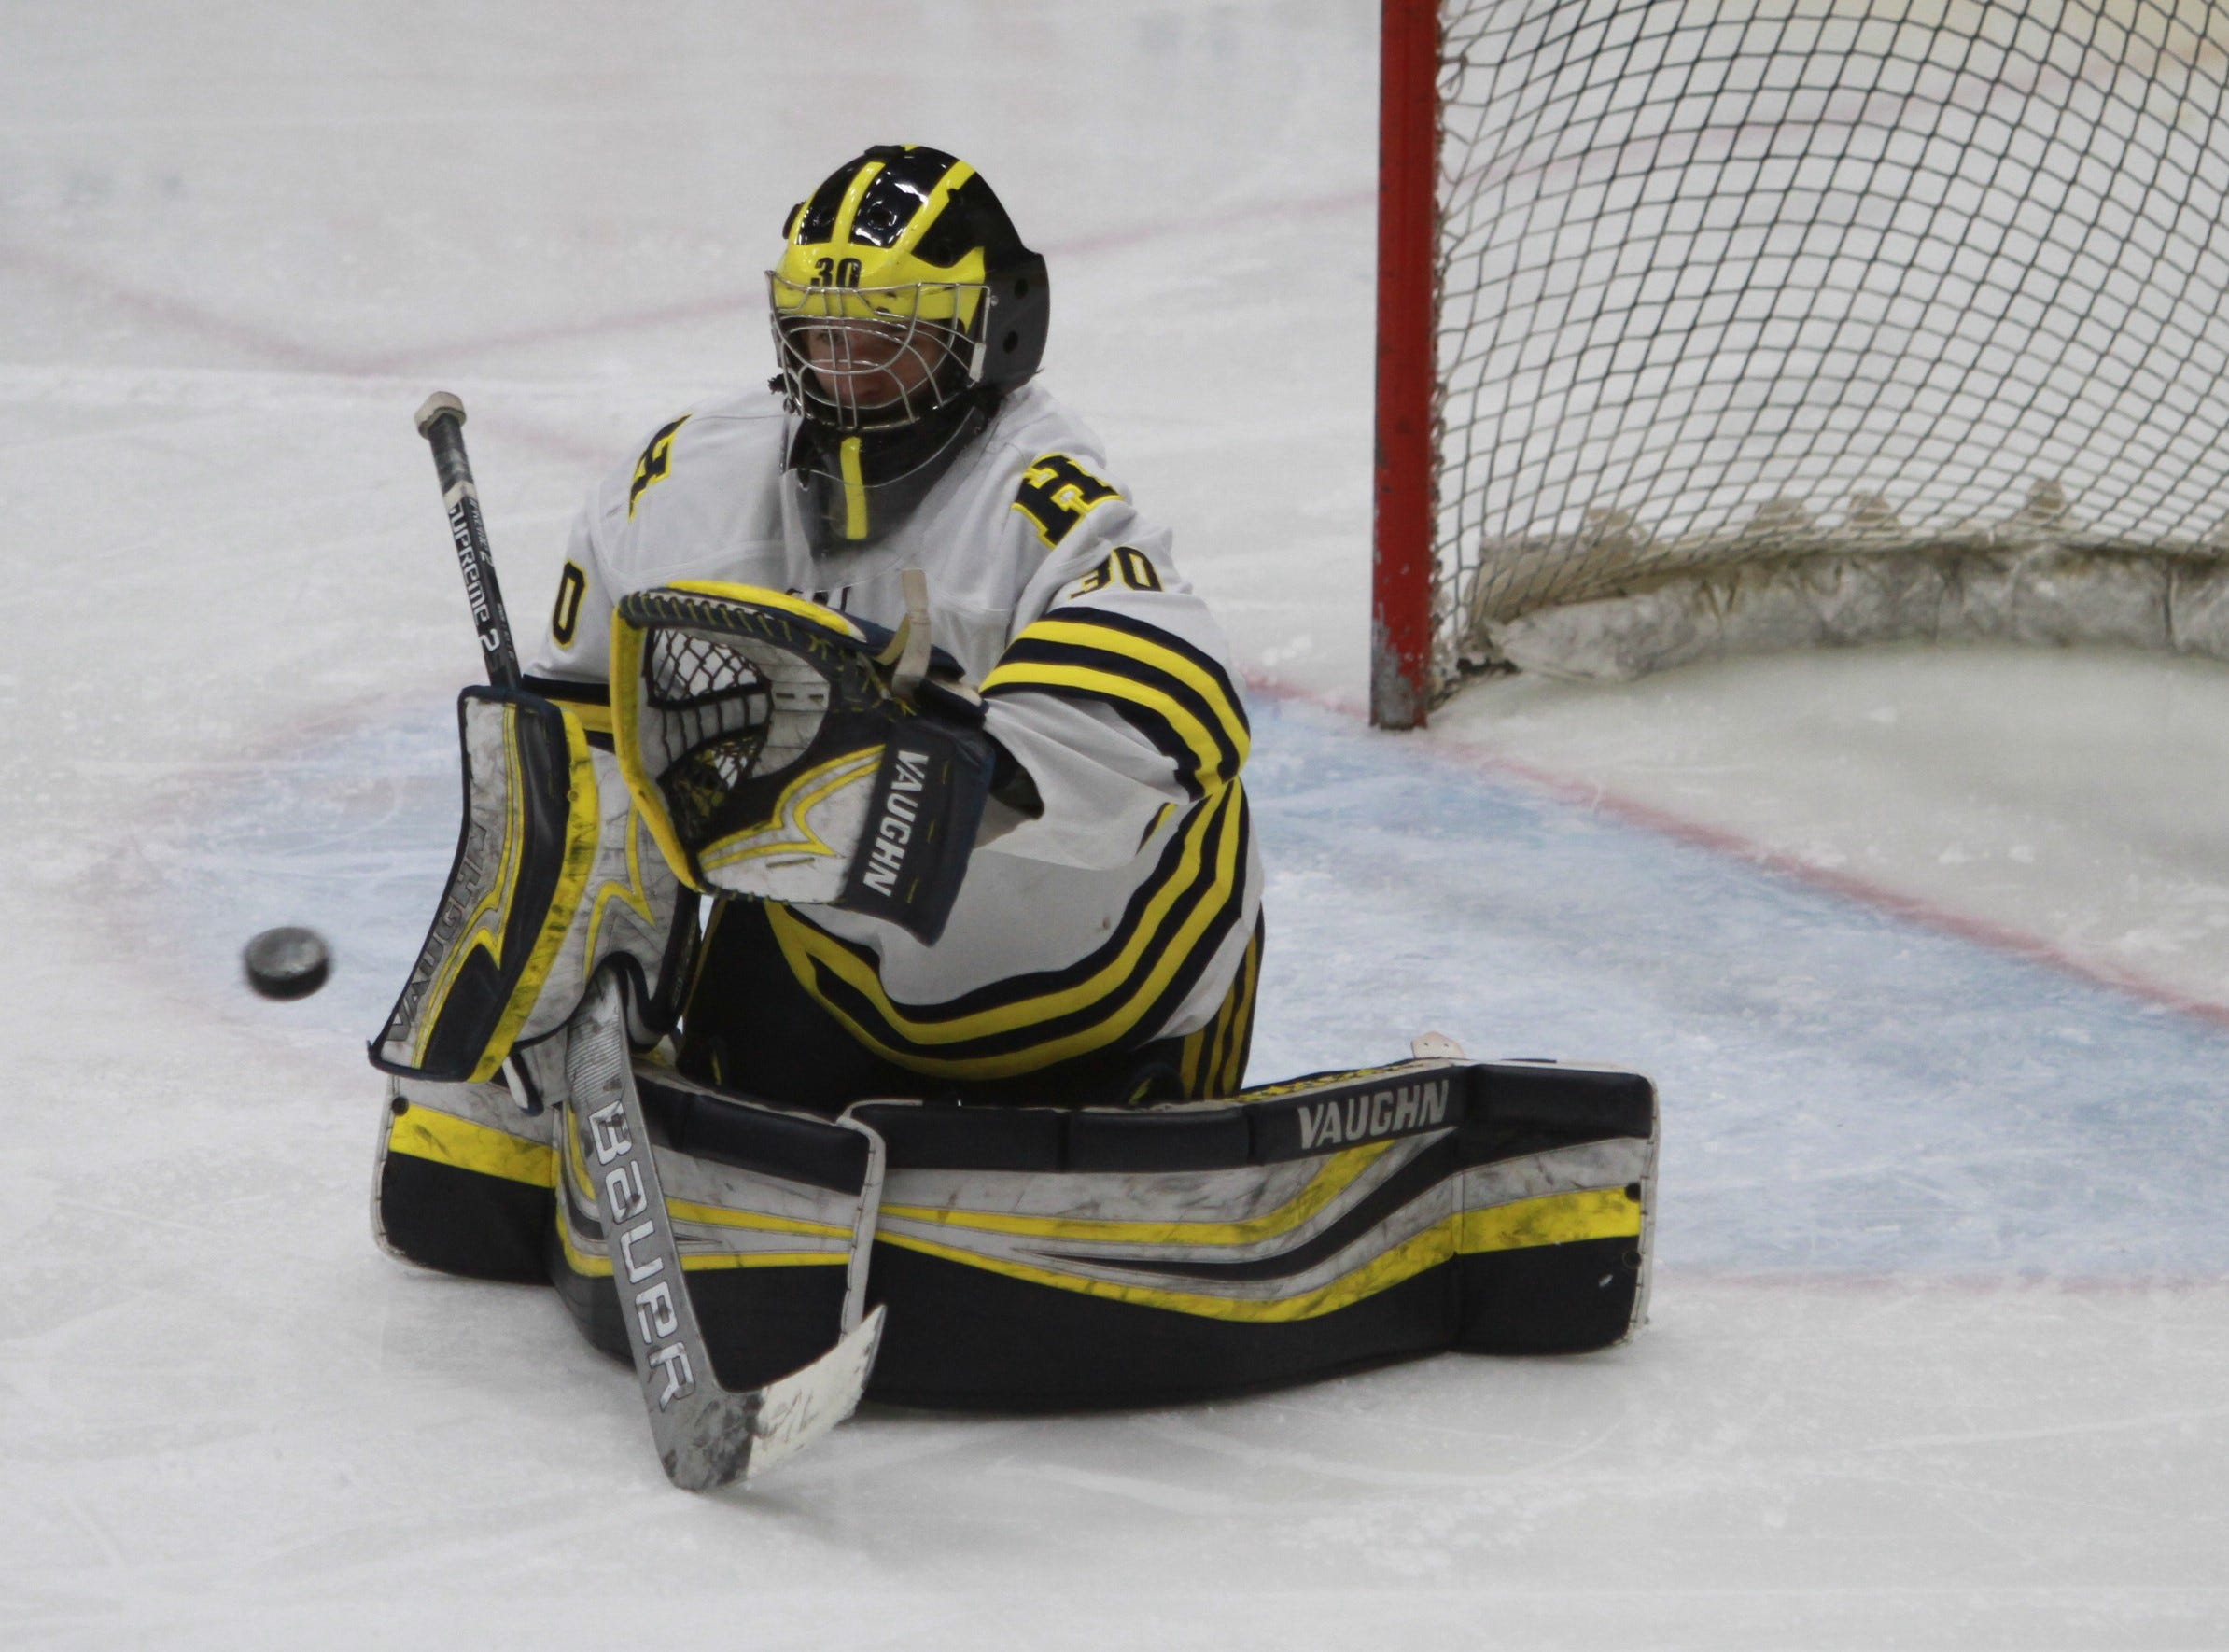 Hartland goalie Brett Tome prepares to catch a shot during a 6-0 victory over Forest Hills Eastern in the state Division 2 hockey quarterfinals in Flint on Tuesday, March 5, 2019.